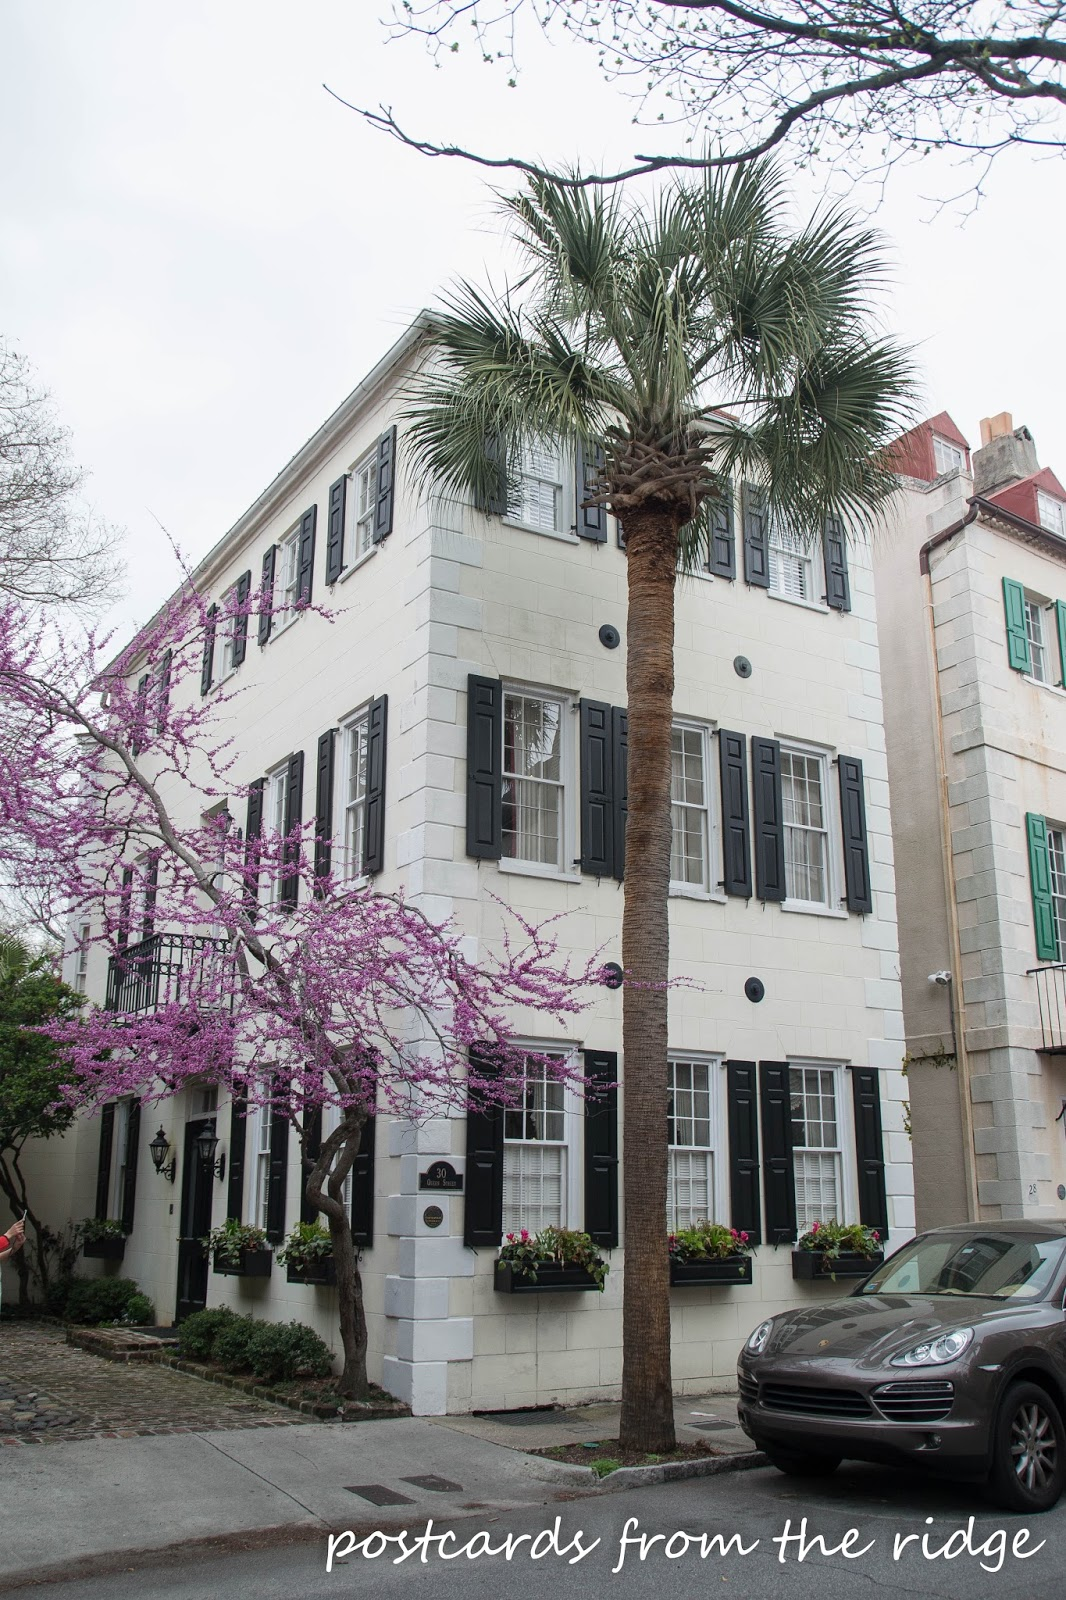 Pretty old home in the French quarter of Charleston, SC. Love the redbud tree! Postcards from the Ridge.